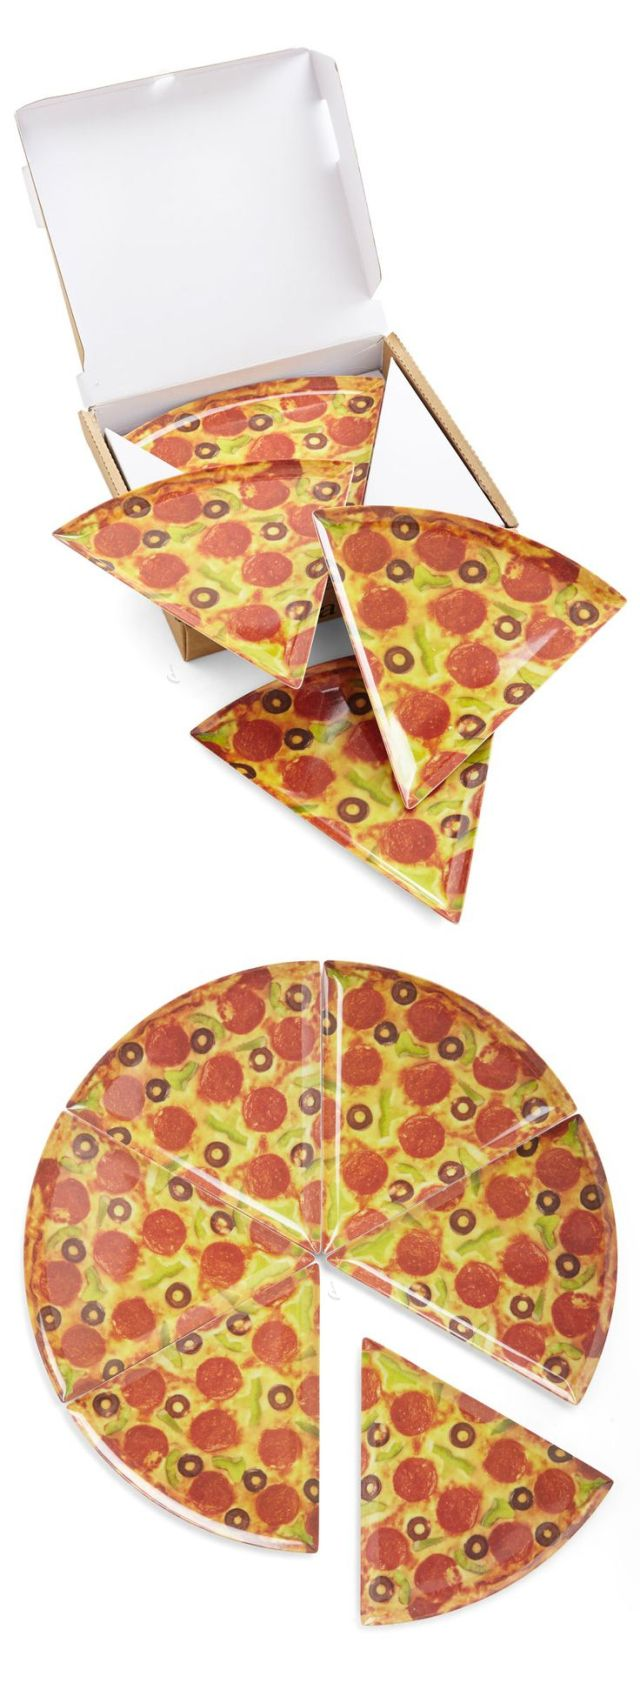 Pizza Slice Plates – Set of 6: Make eating pizza more delicious than ever! #pizza #plates - www.MyWonderList.com